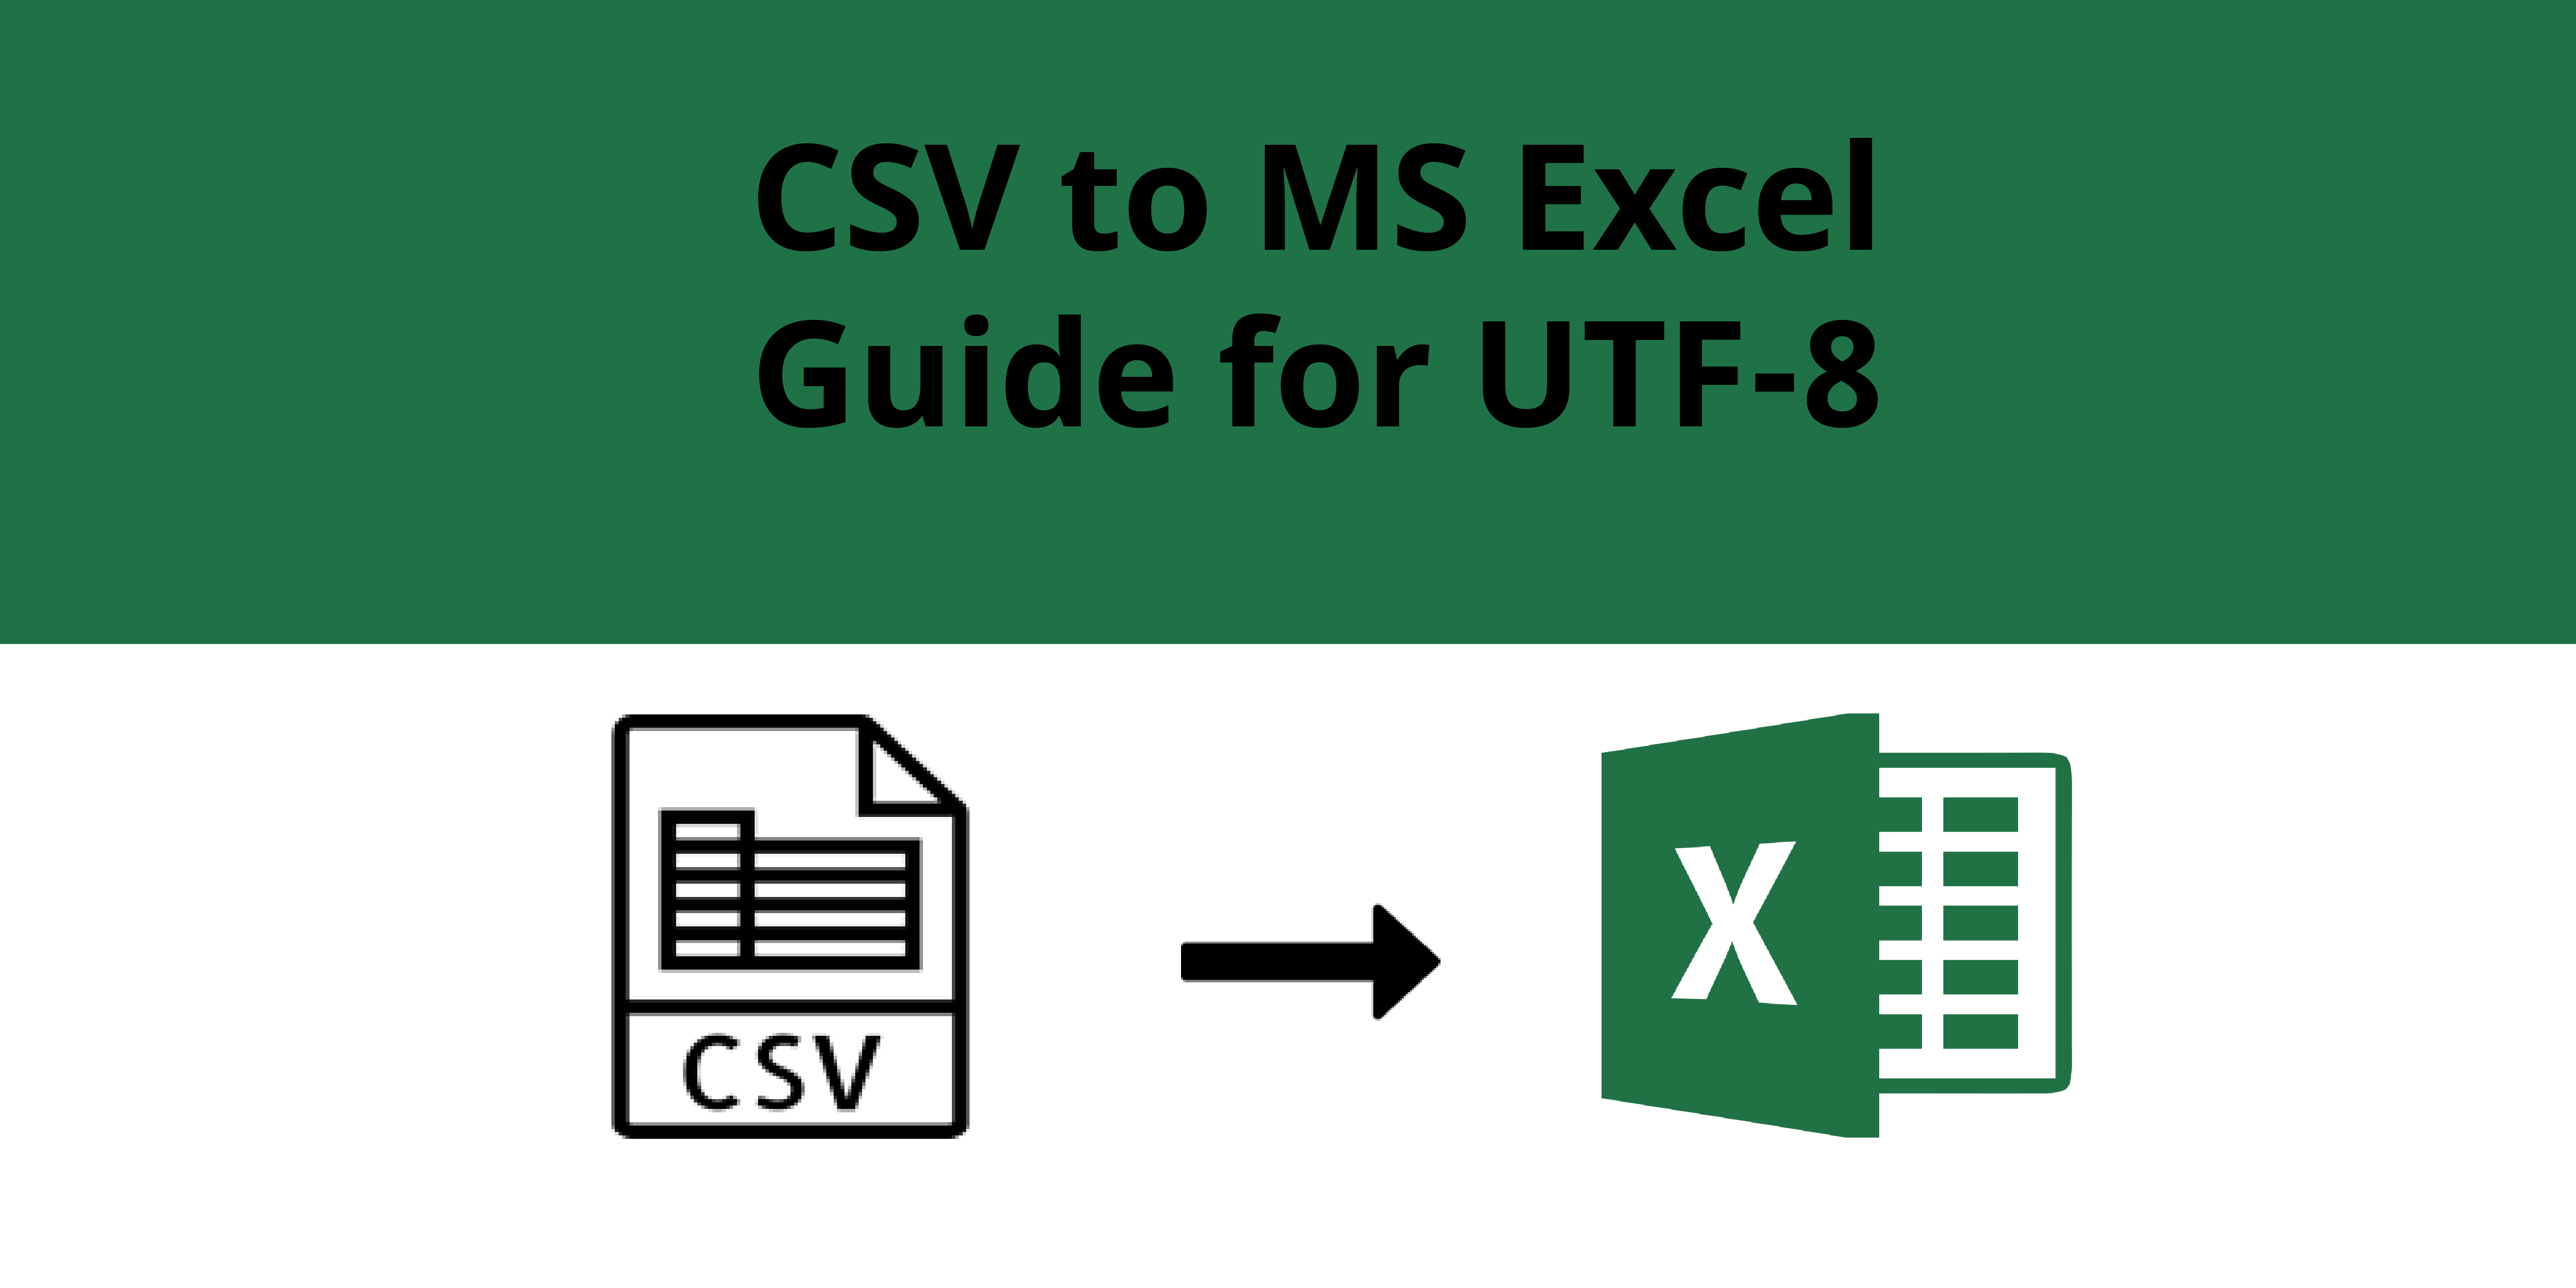 CSV to MS Excel Guide for UTF-8